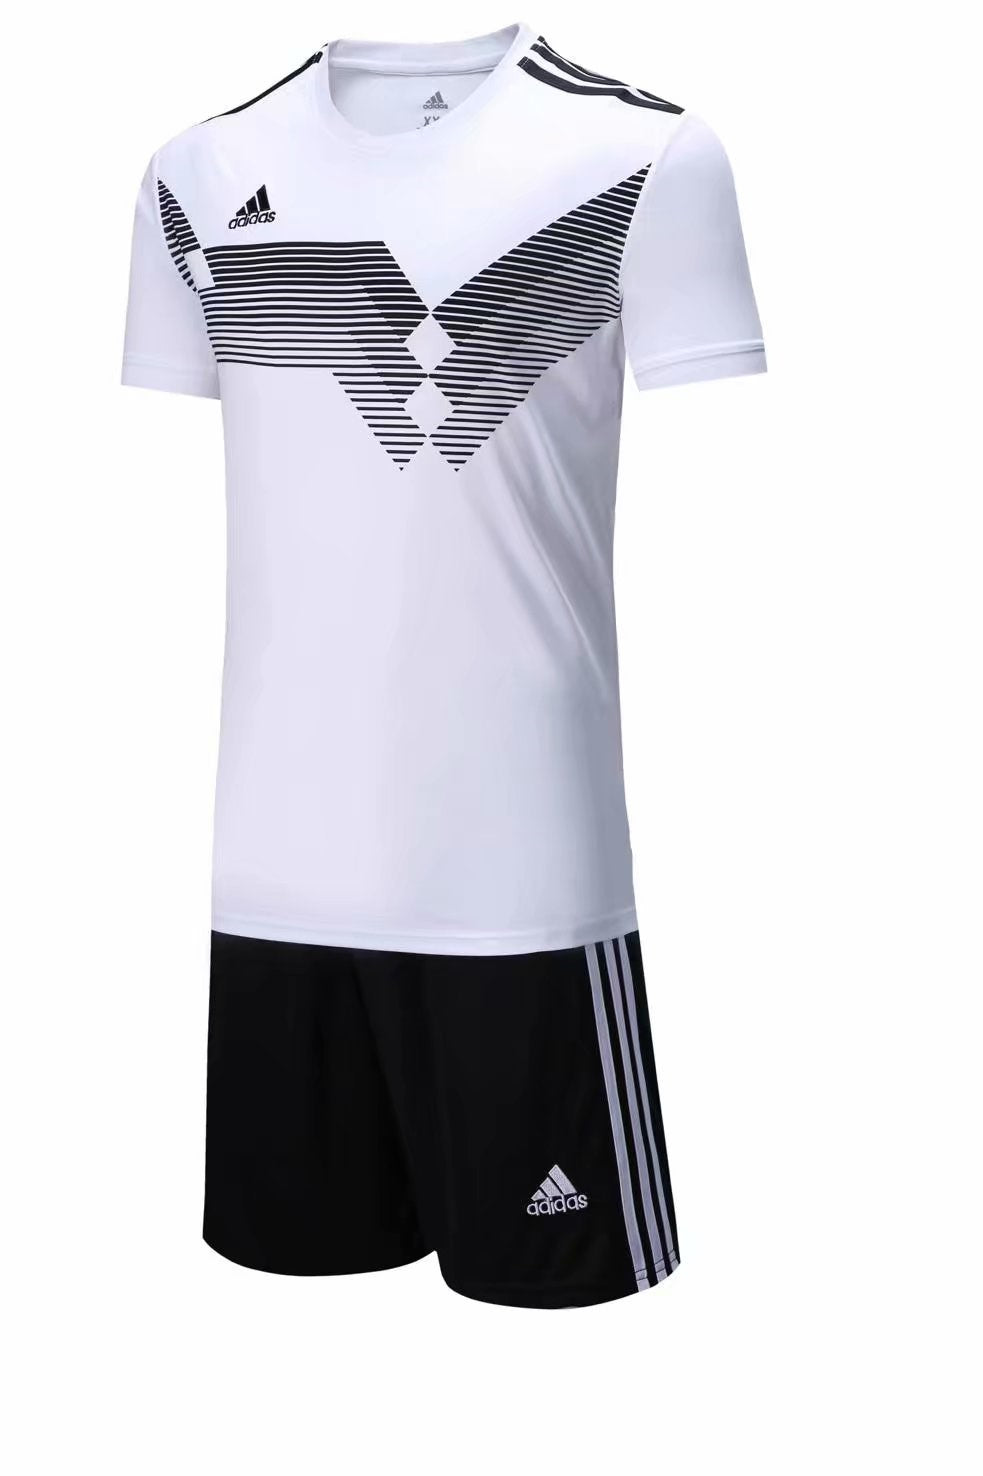 Adidas Full Football Kit Adult Sizes only - White with Black Stripe